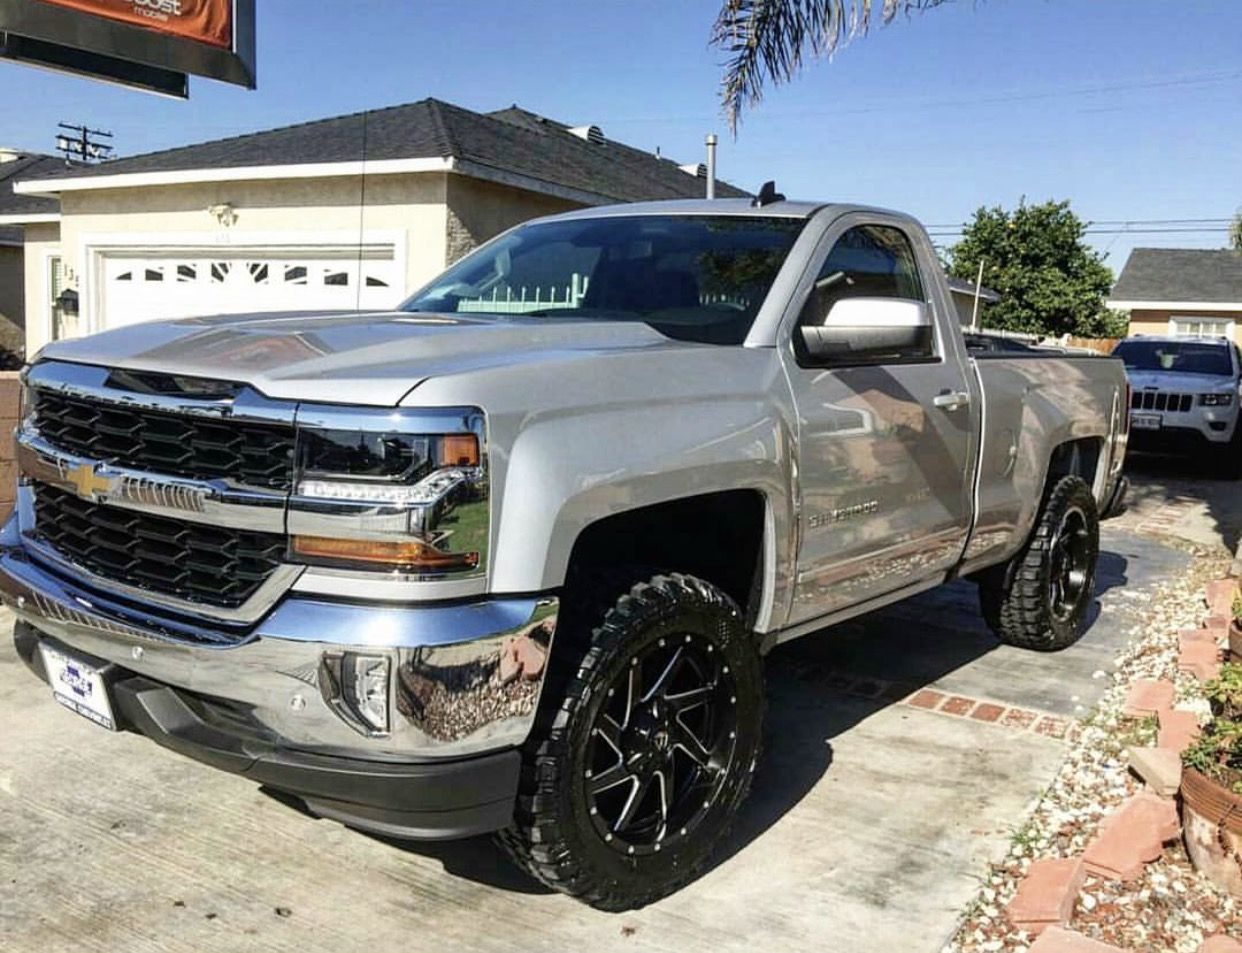 2016 Silverado single cab Trucks Pinterest